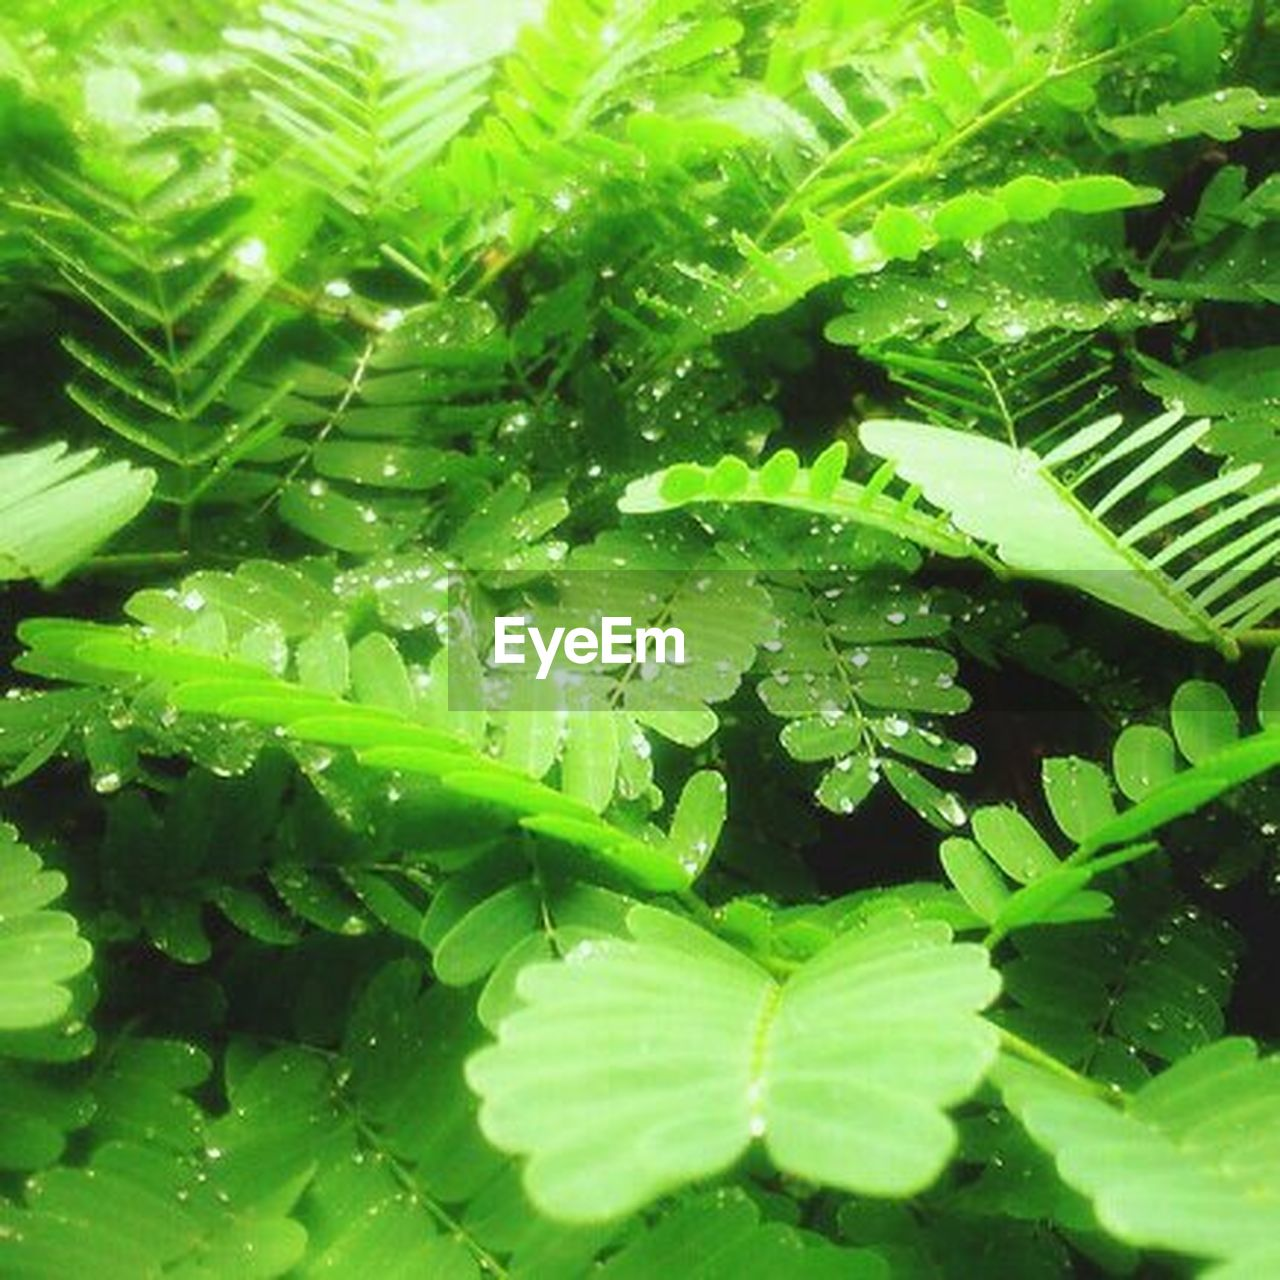 green color, leaf, nature, growth, plant, no people, close-up, full frame, water, day, outdoors, freshness, backgrounds, beauty in nature